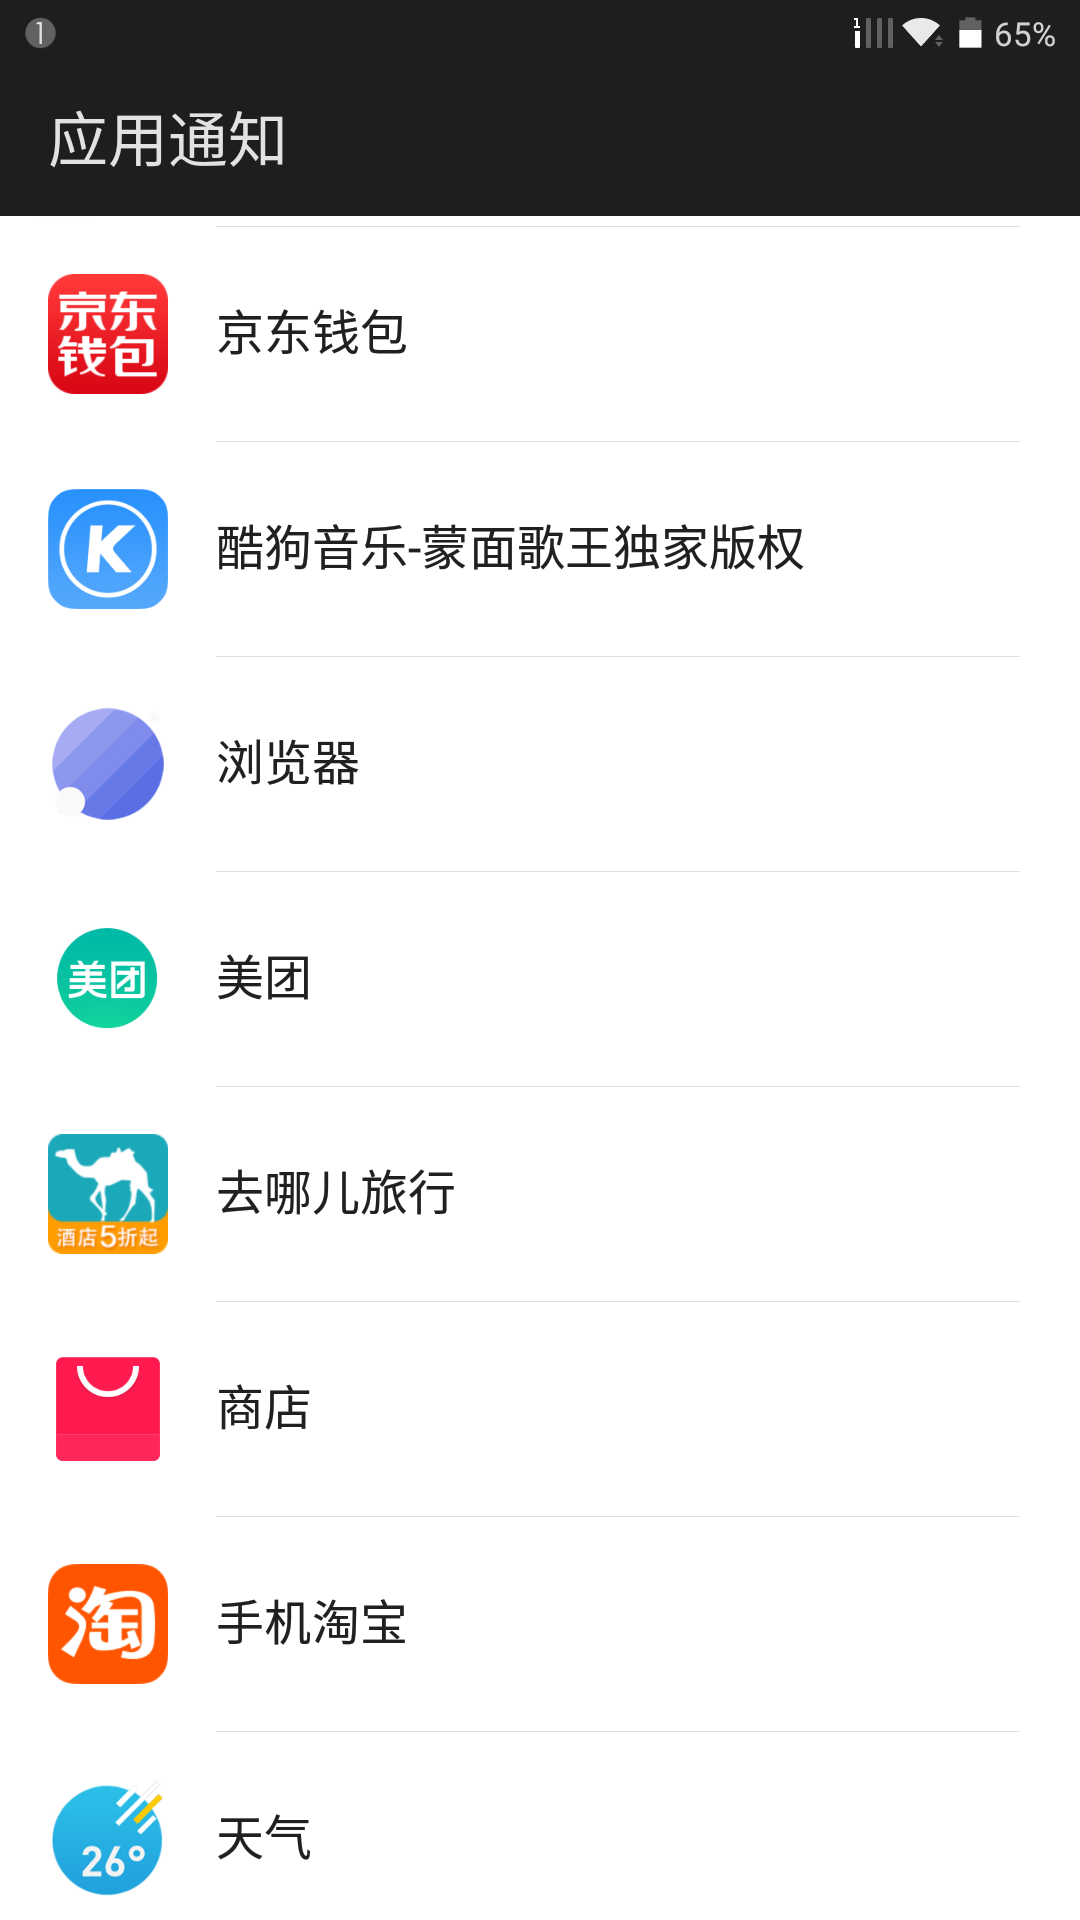 Screenshot_2015-09-01-12-55-23.png